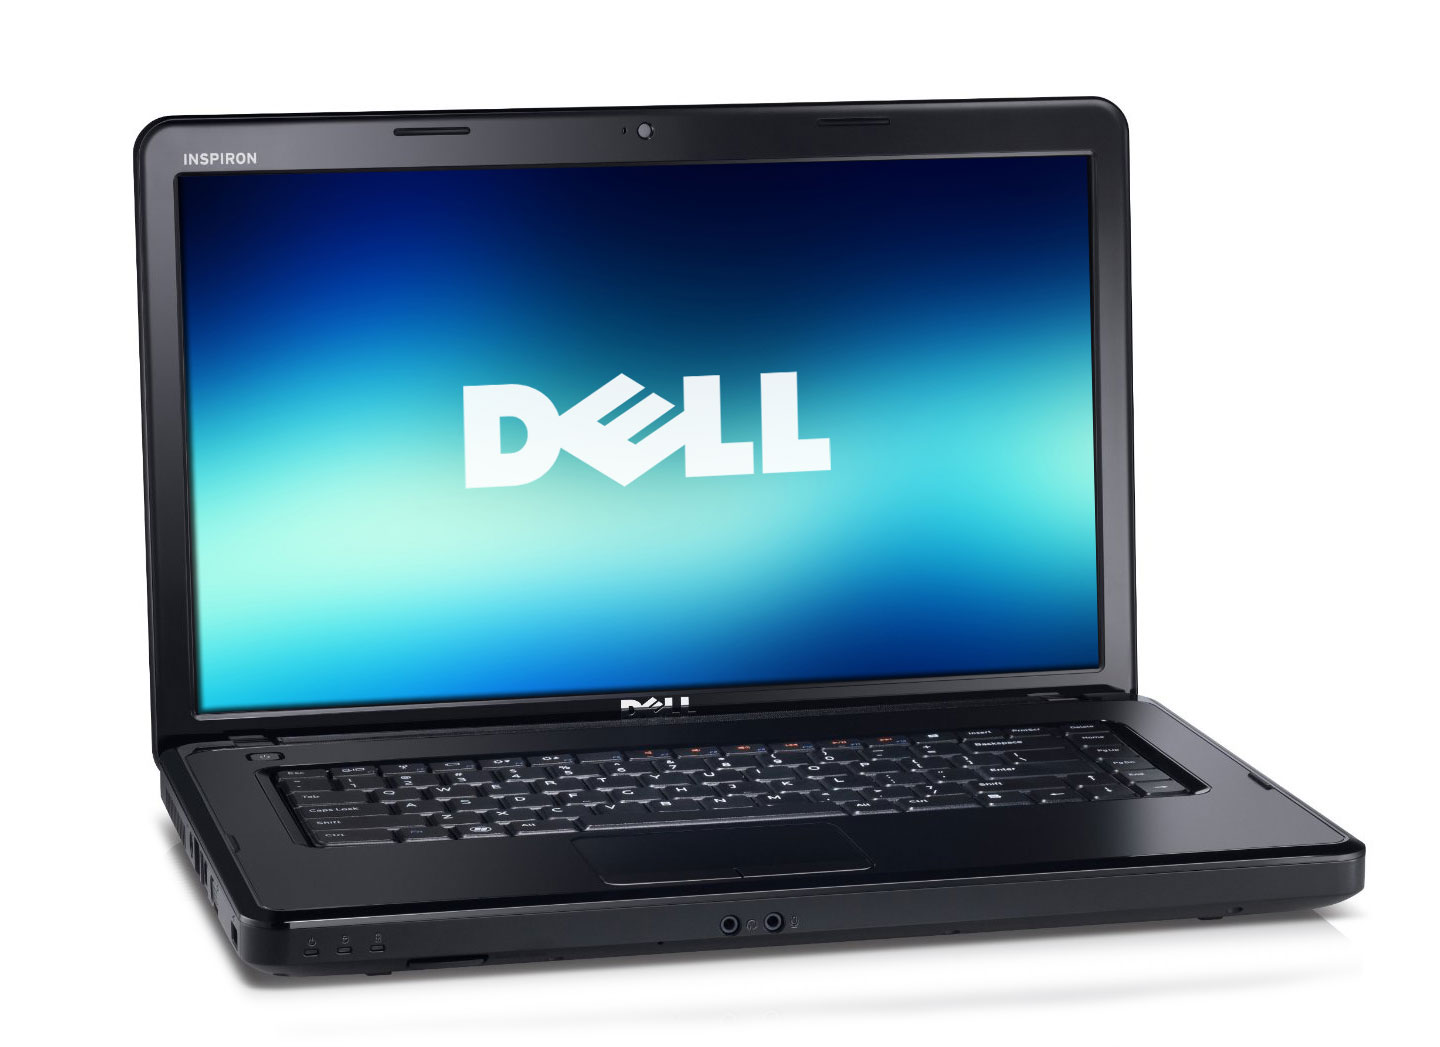 driver dell inspiron n5040 windows 7